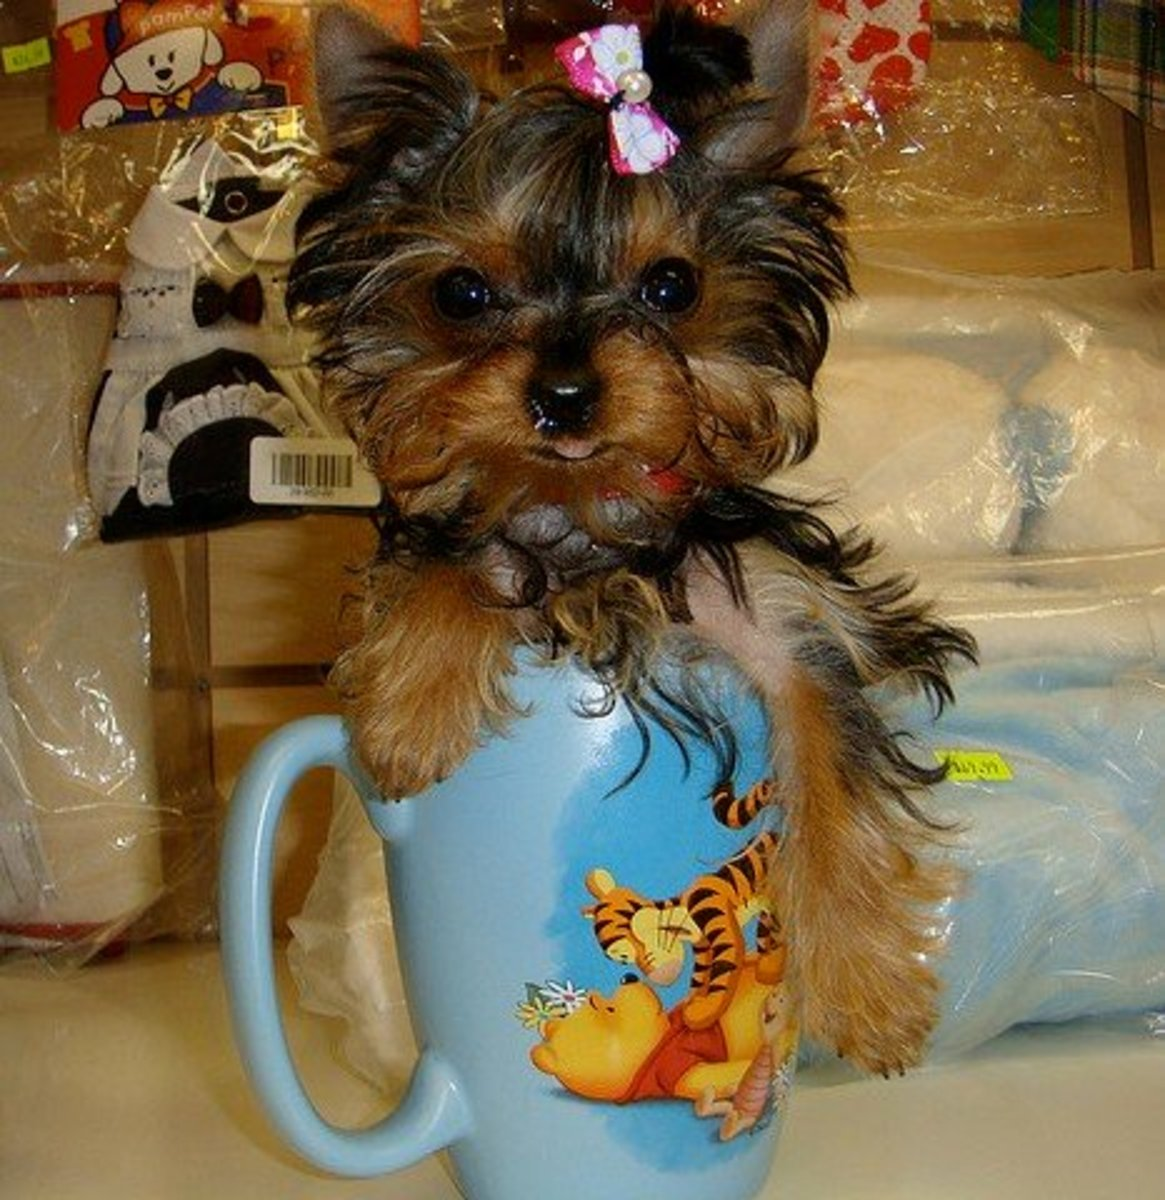 80+ Cool Dog Names for a Yorkie